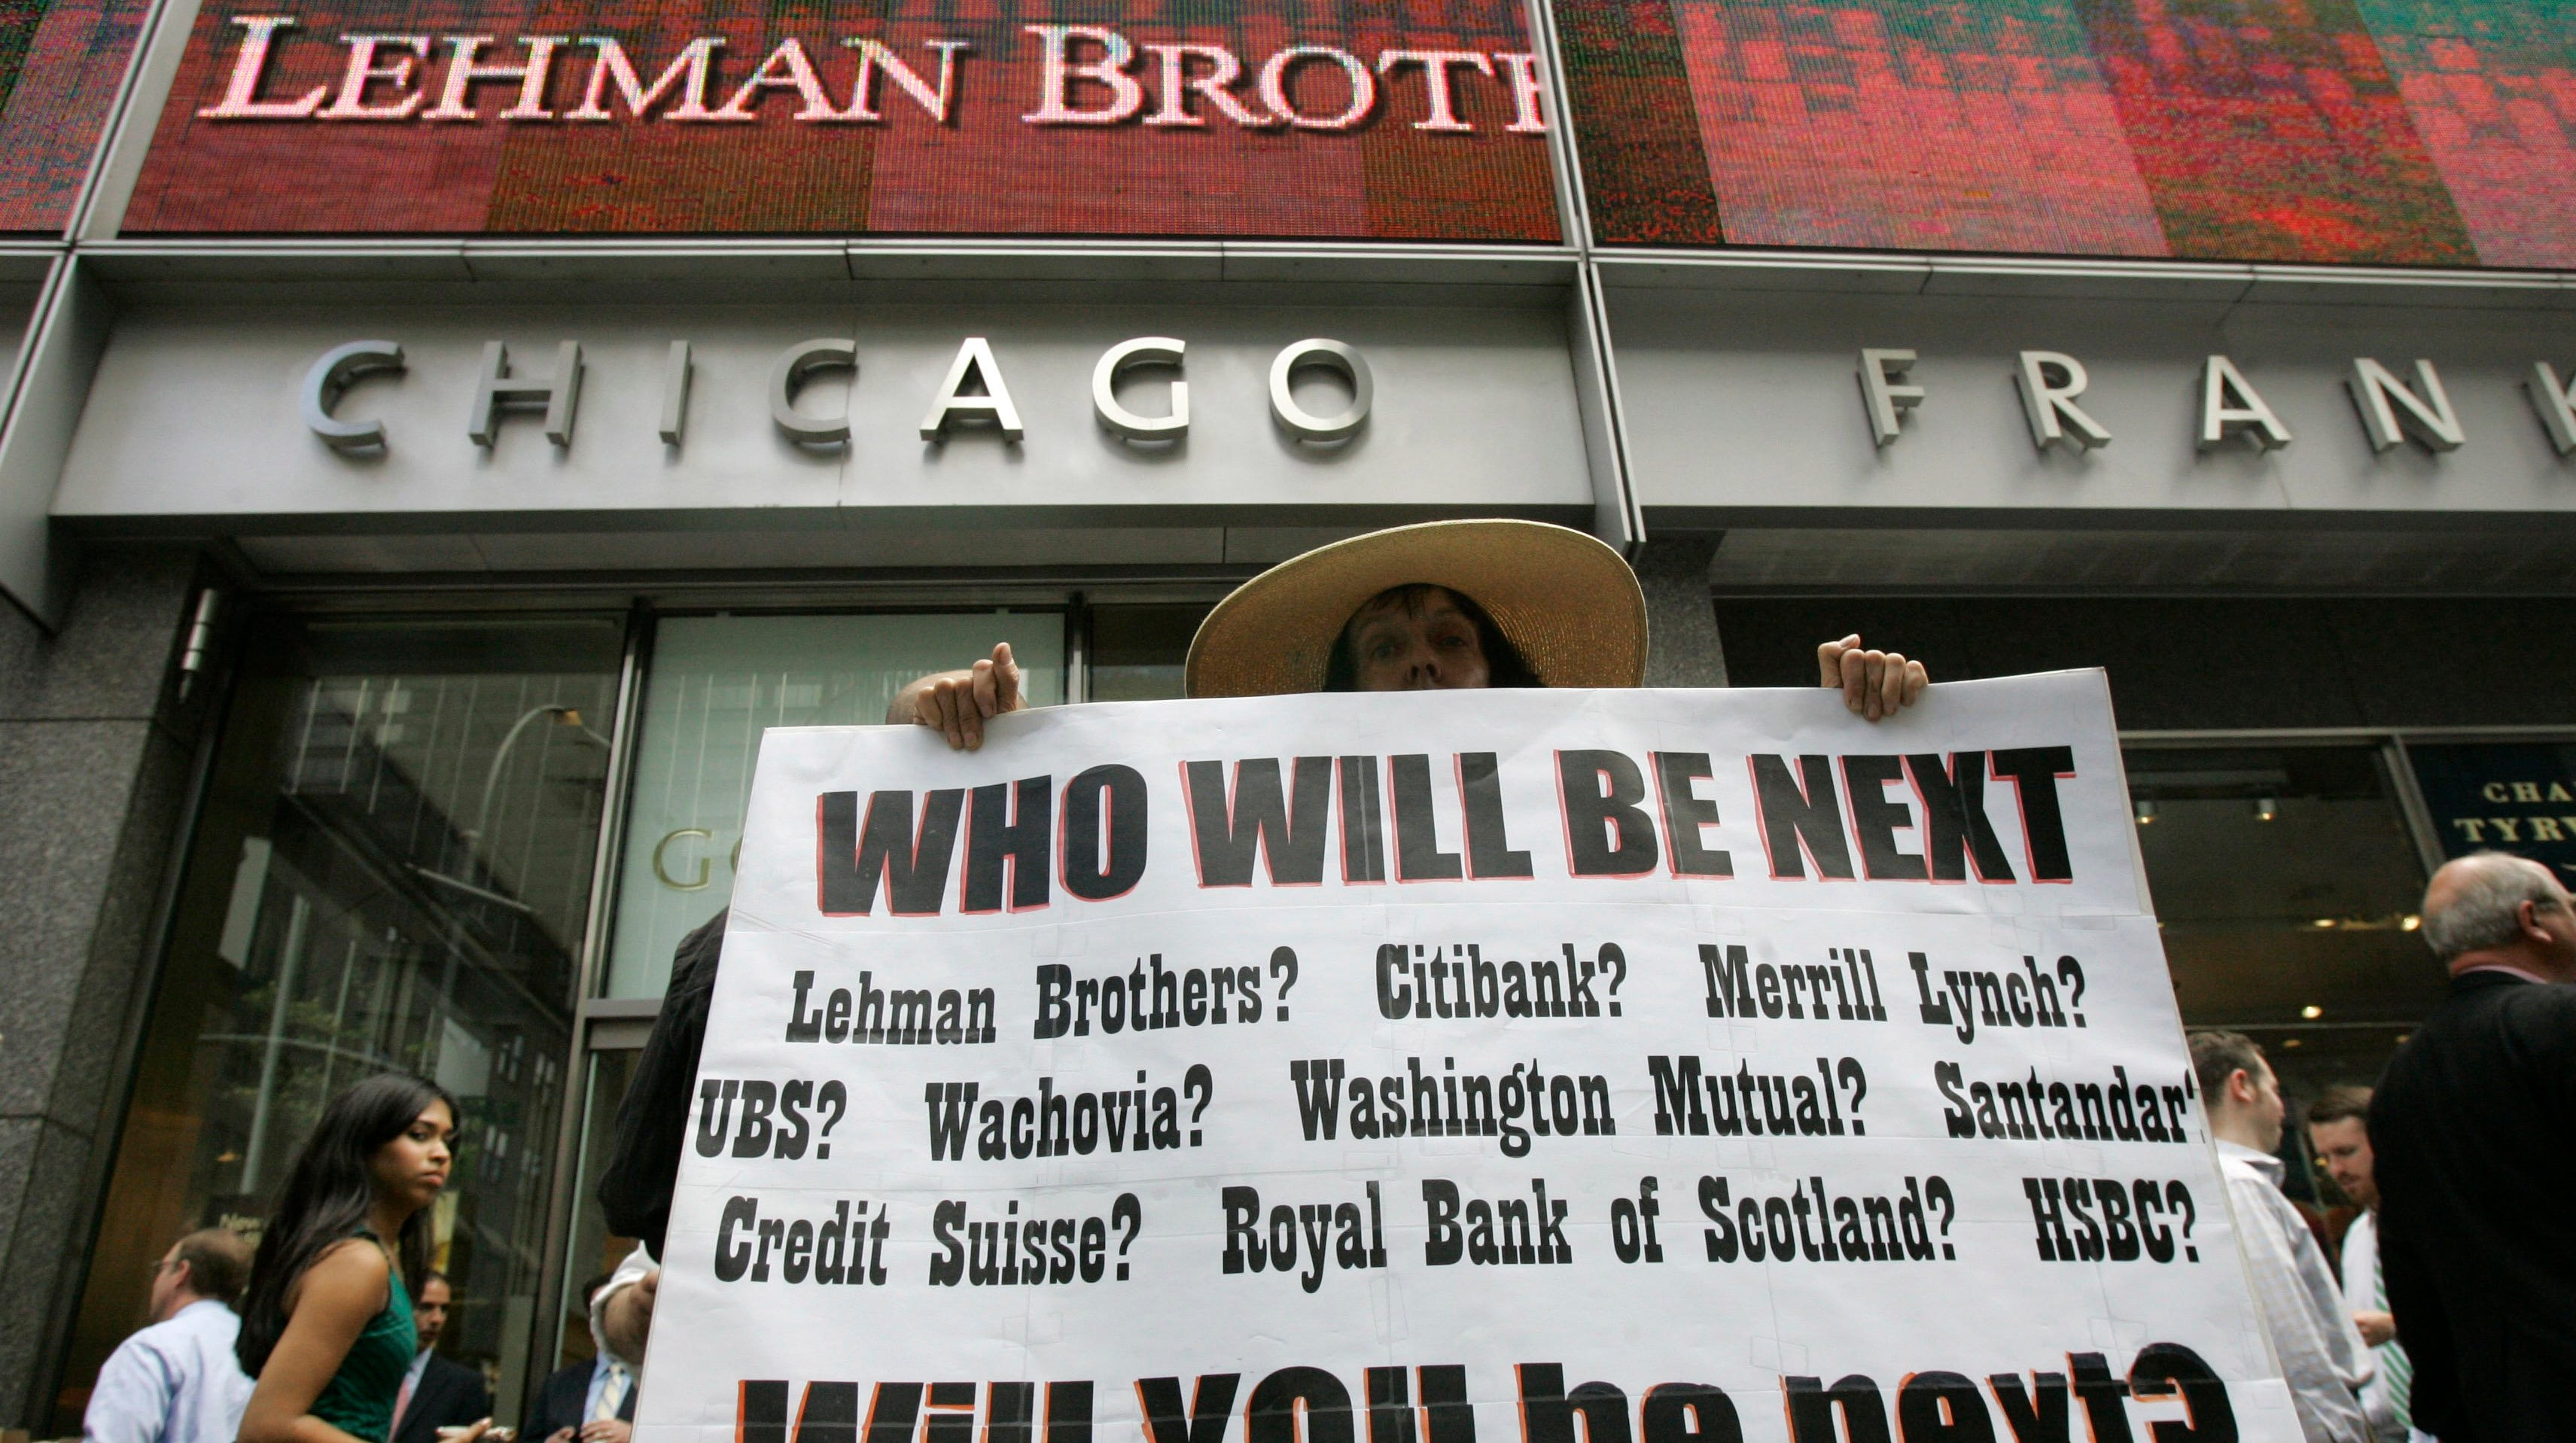 Protest in front of Lehman Bros. on Sept. 15, 2008, in New York.